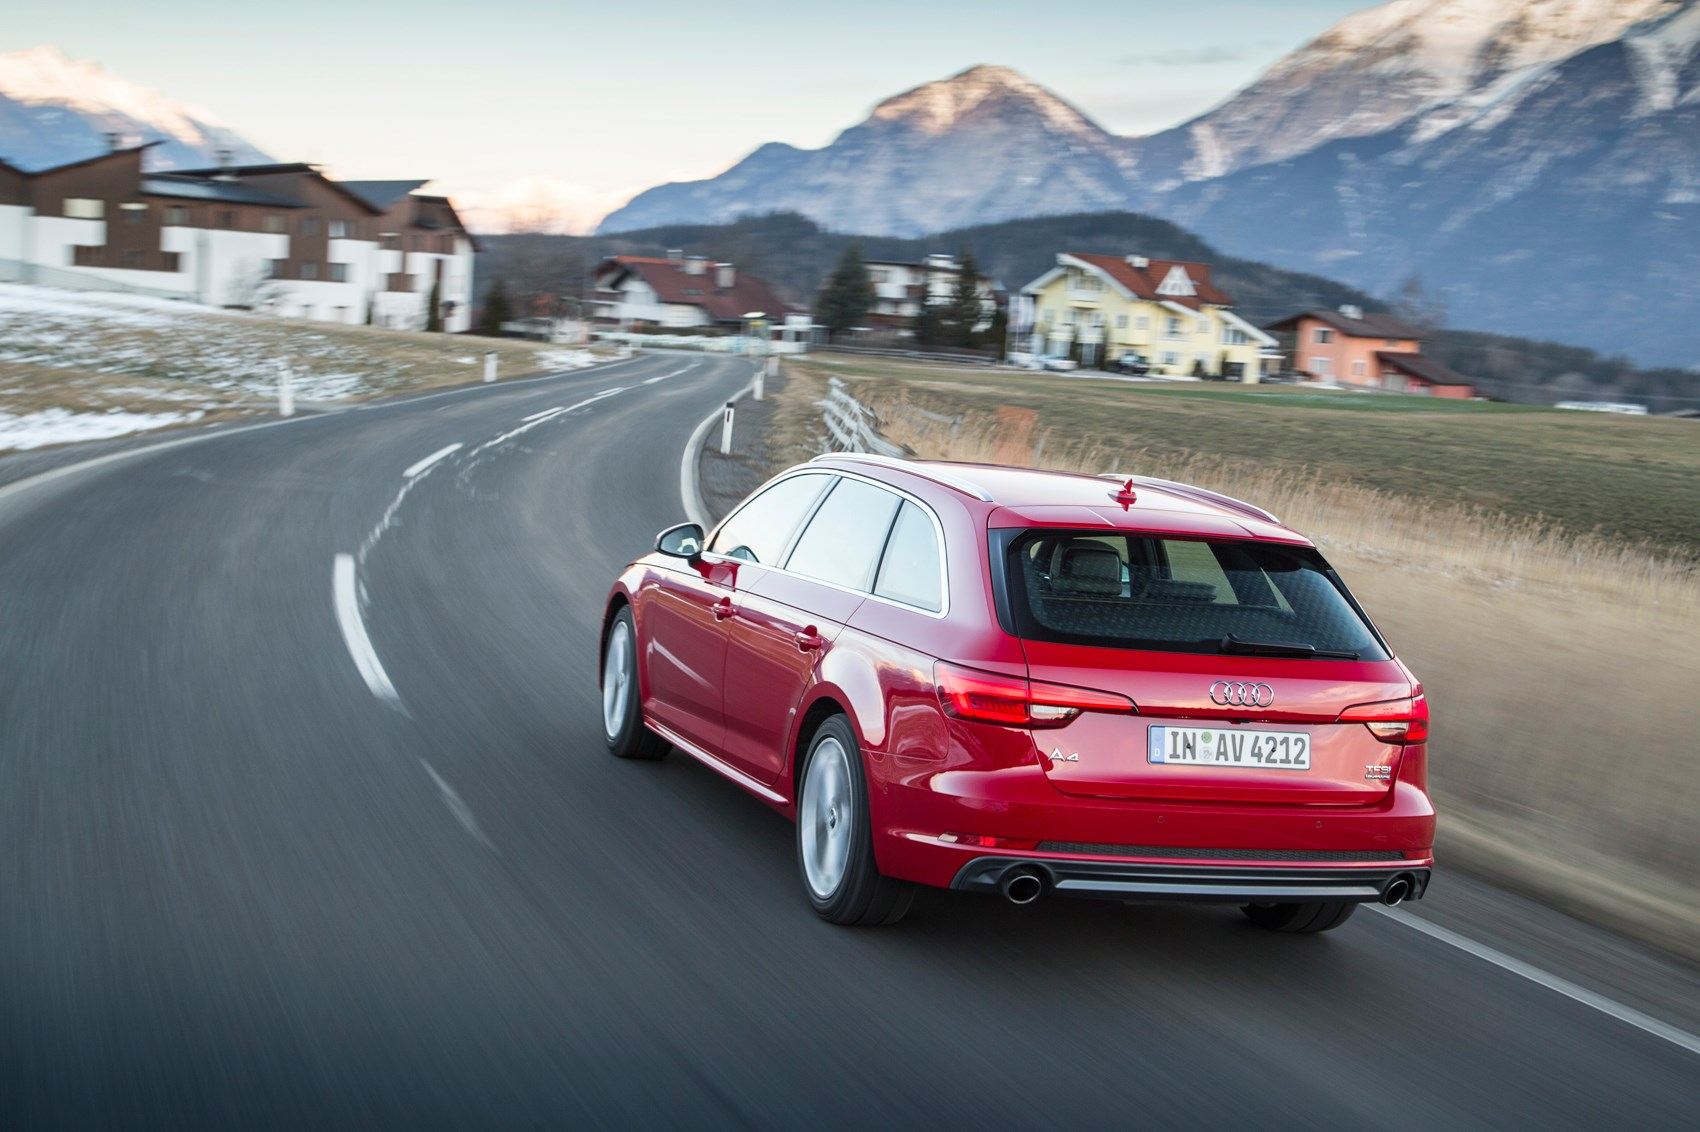 Review Audis Newfor Quattro With Ultra Allwheeldrive - All audi